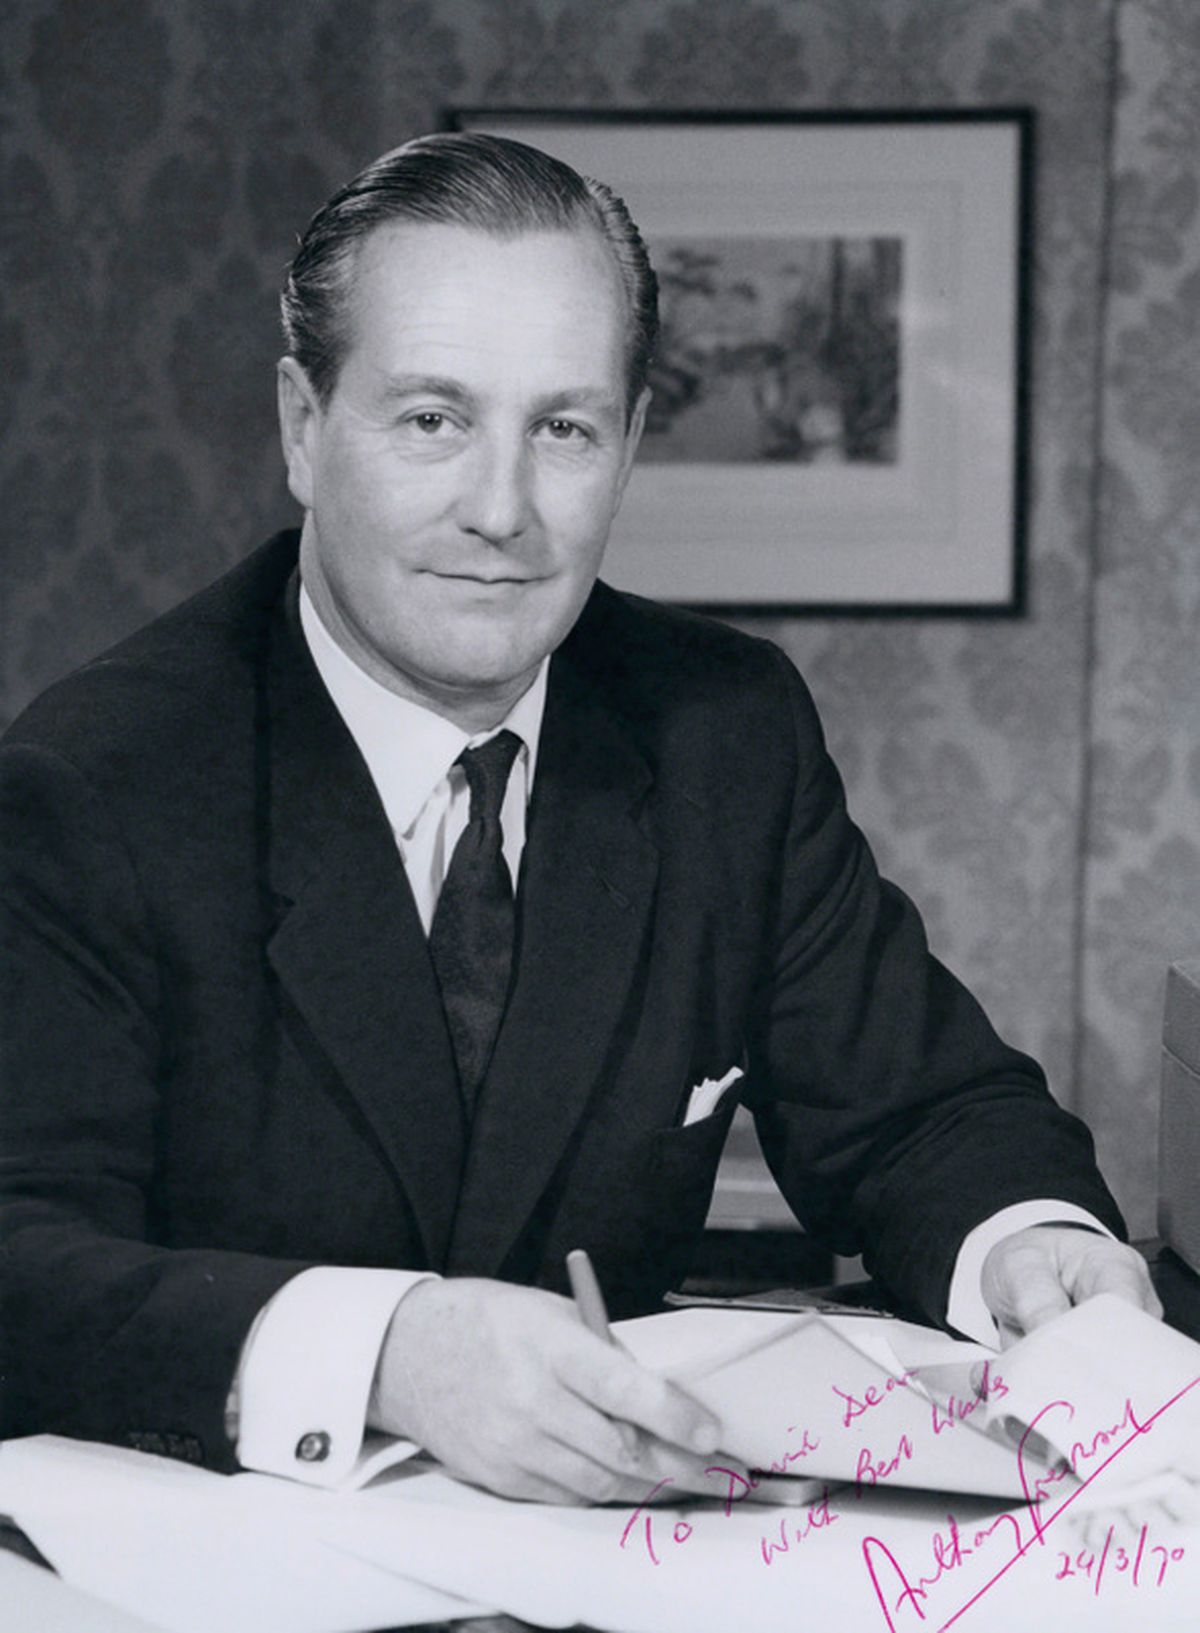 Anthony Greenwood served in Harold Wilson's 1960s Labour government.